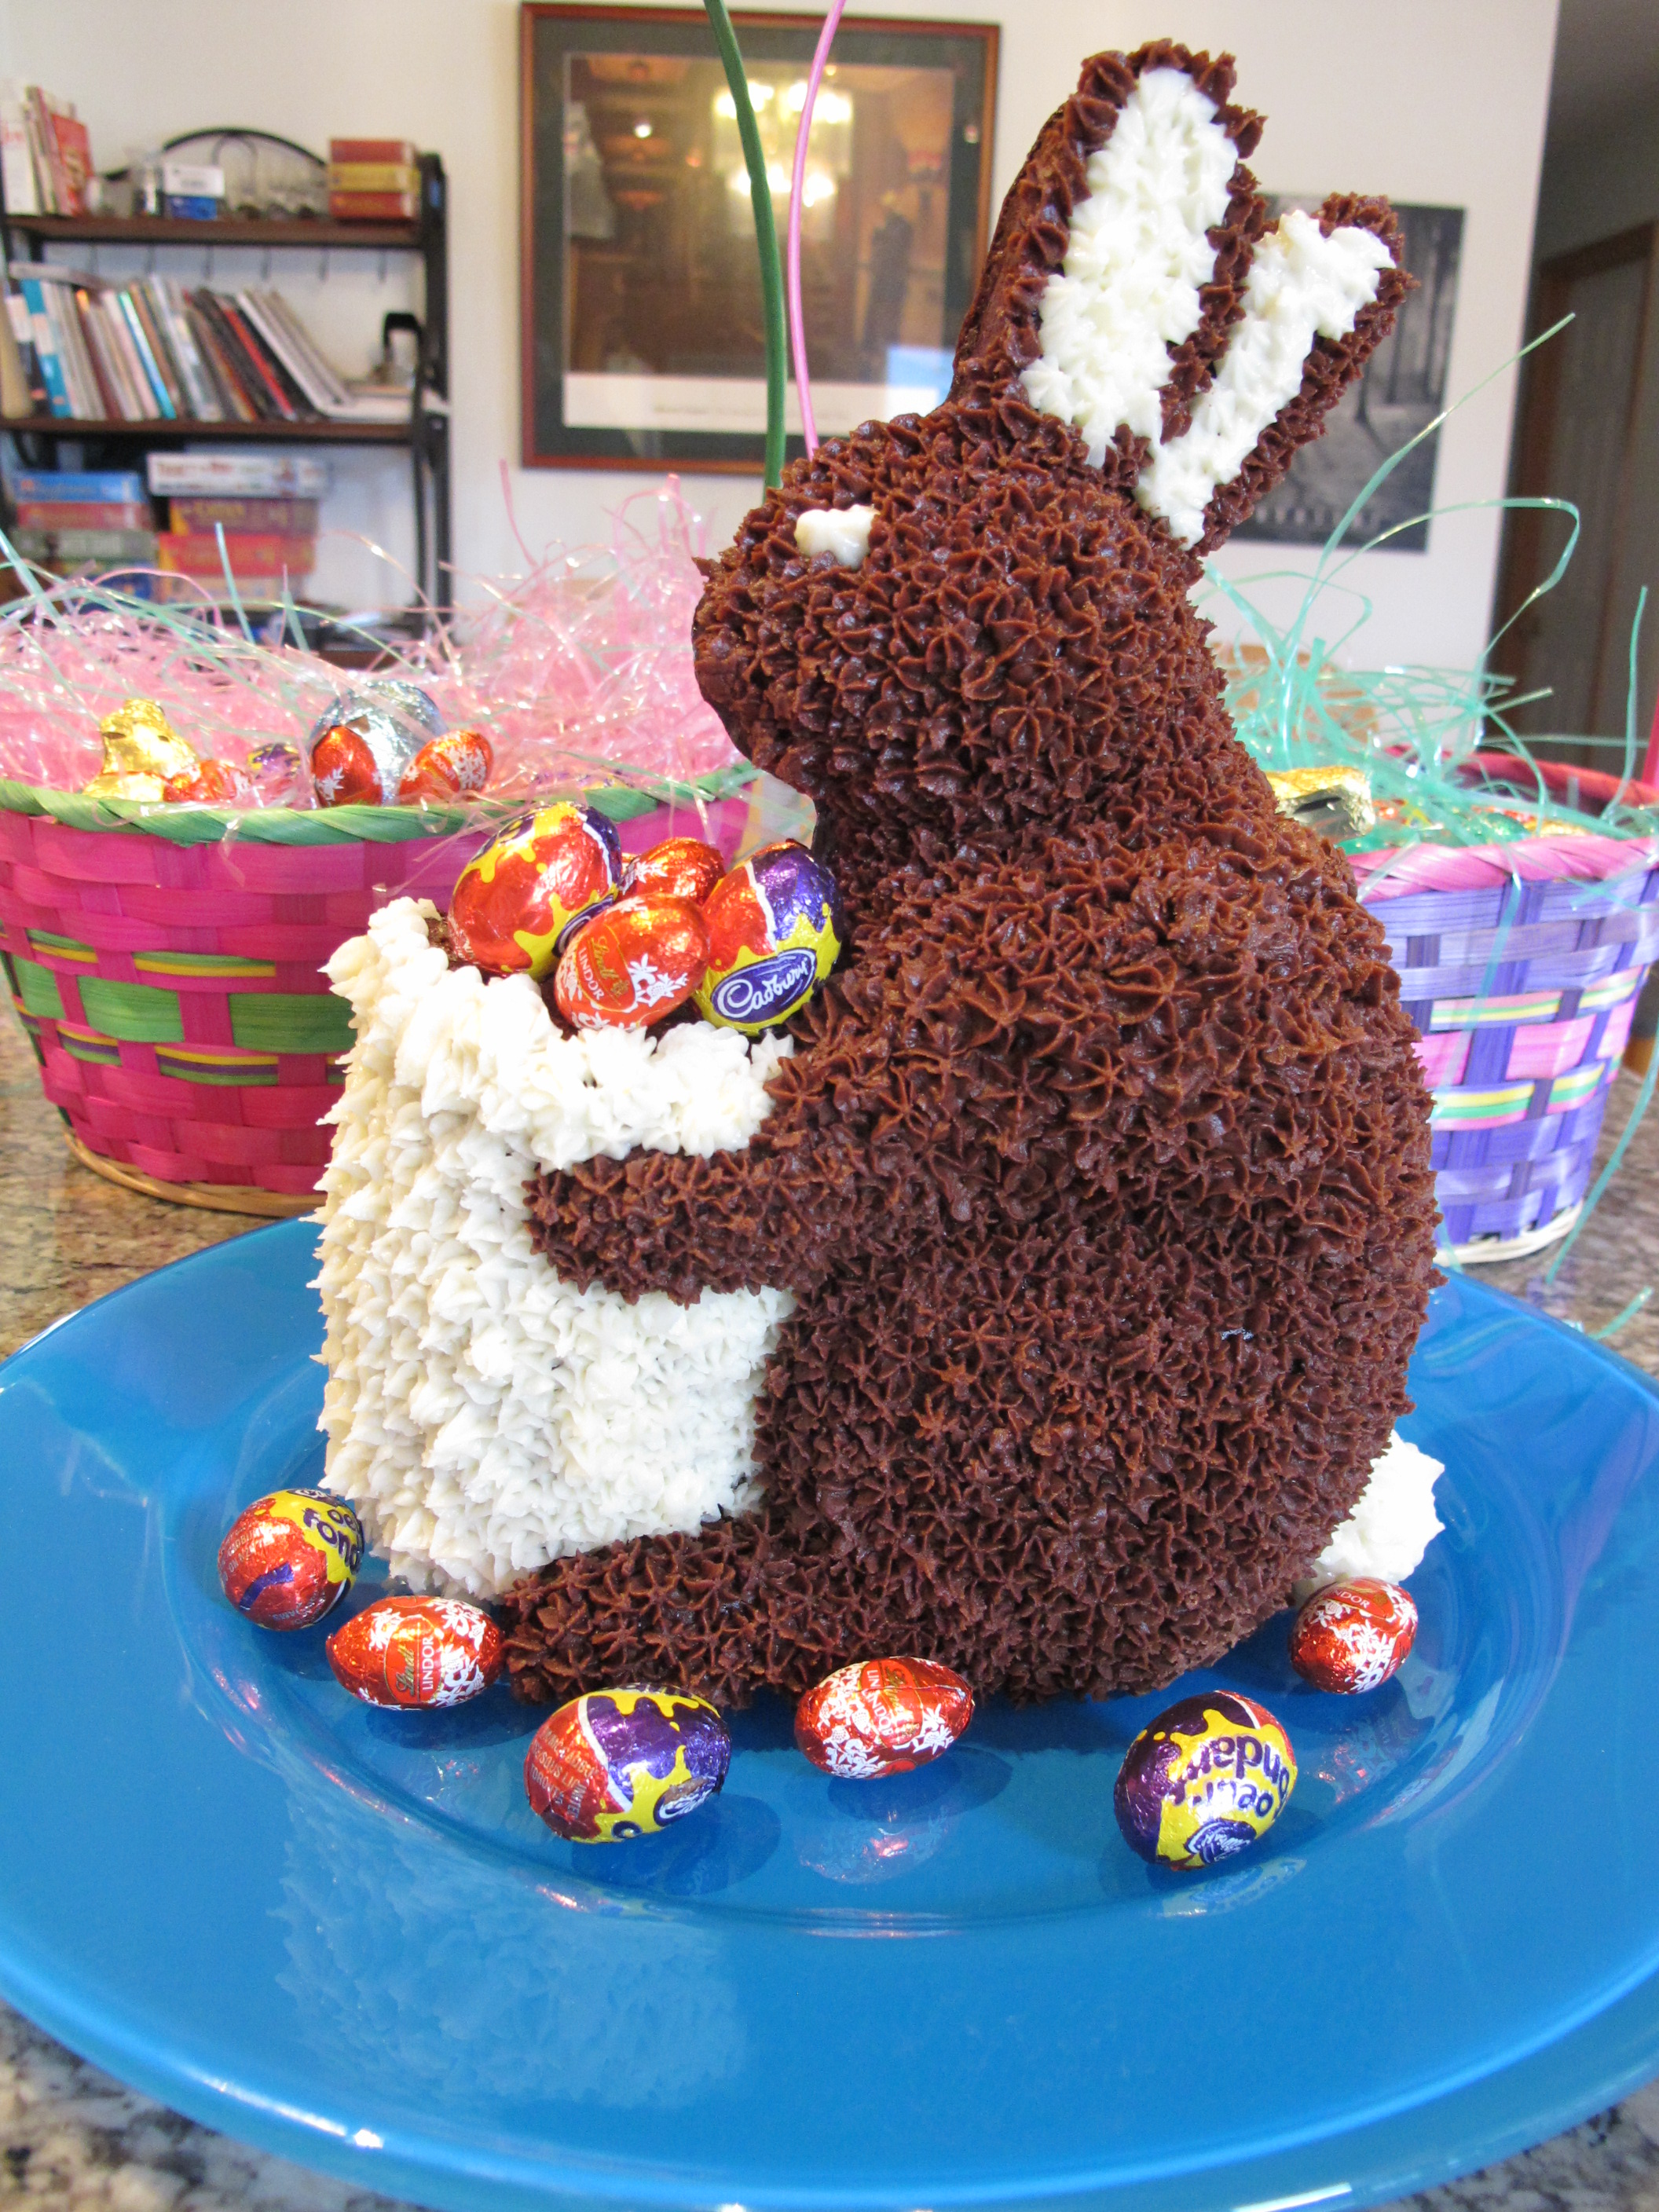 Betty Crocker Easter Bunny Cake & Easter Bunny Cakes u2013 Decoration Ideas | Little Birthday Cakes